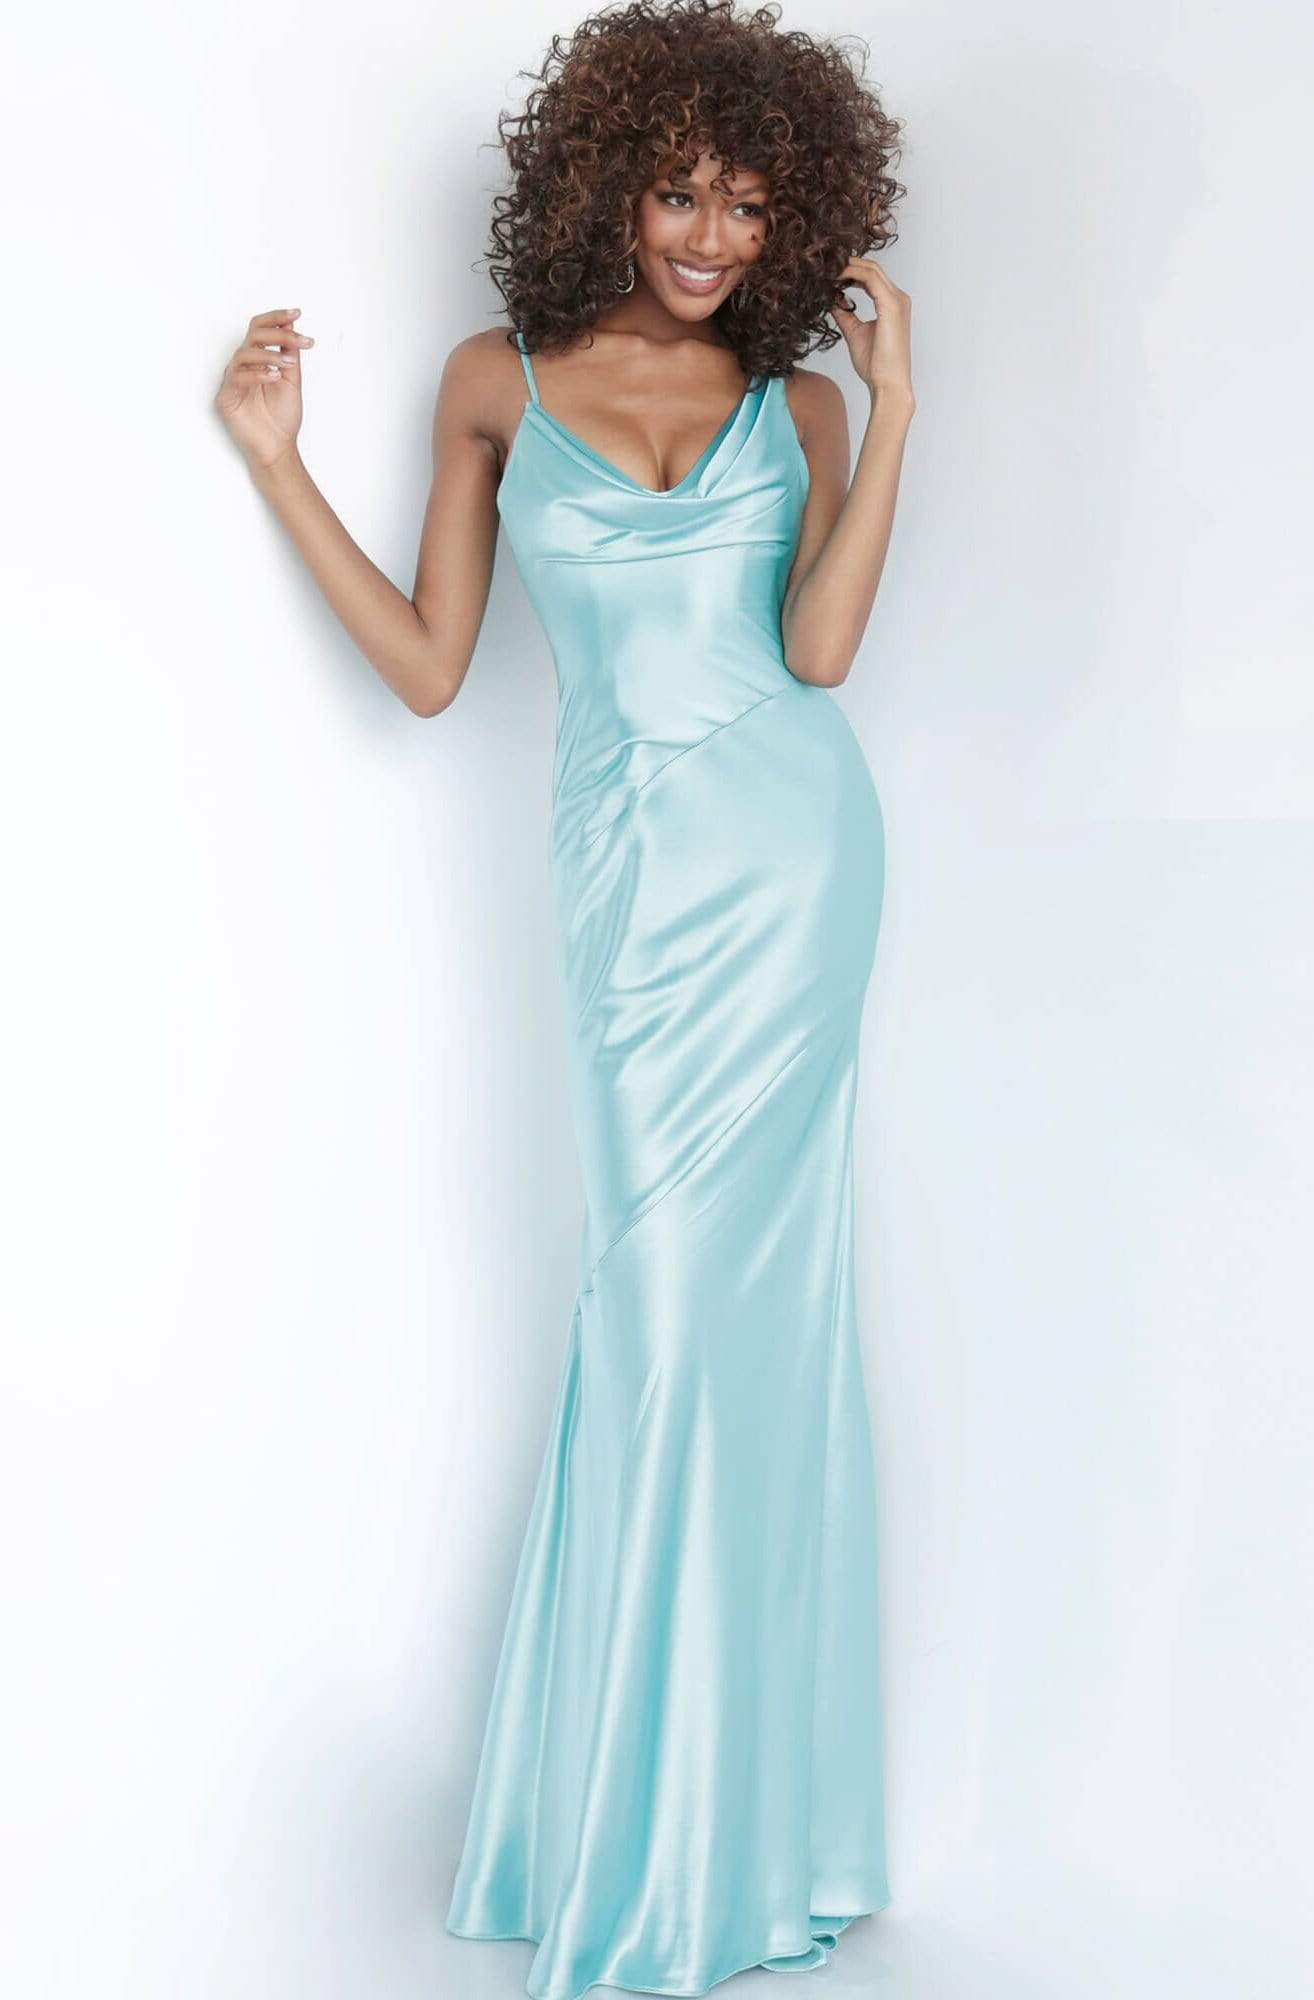 Jovani - 68506 Cowl Neck Satin Sheath Dress Evening Dresses 00 / Aqua